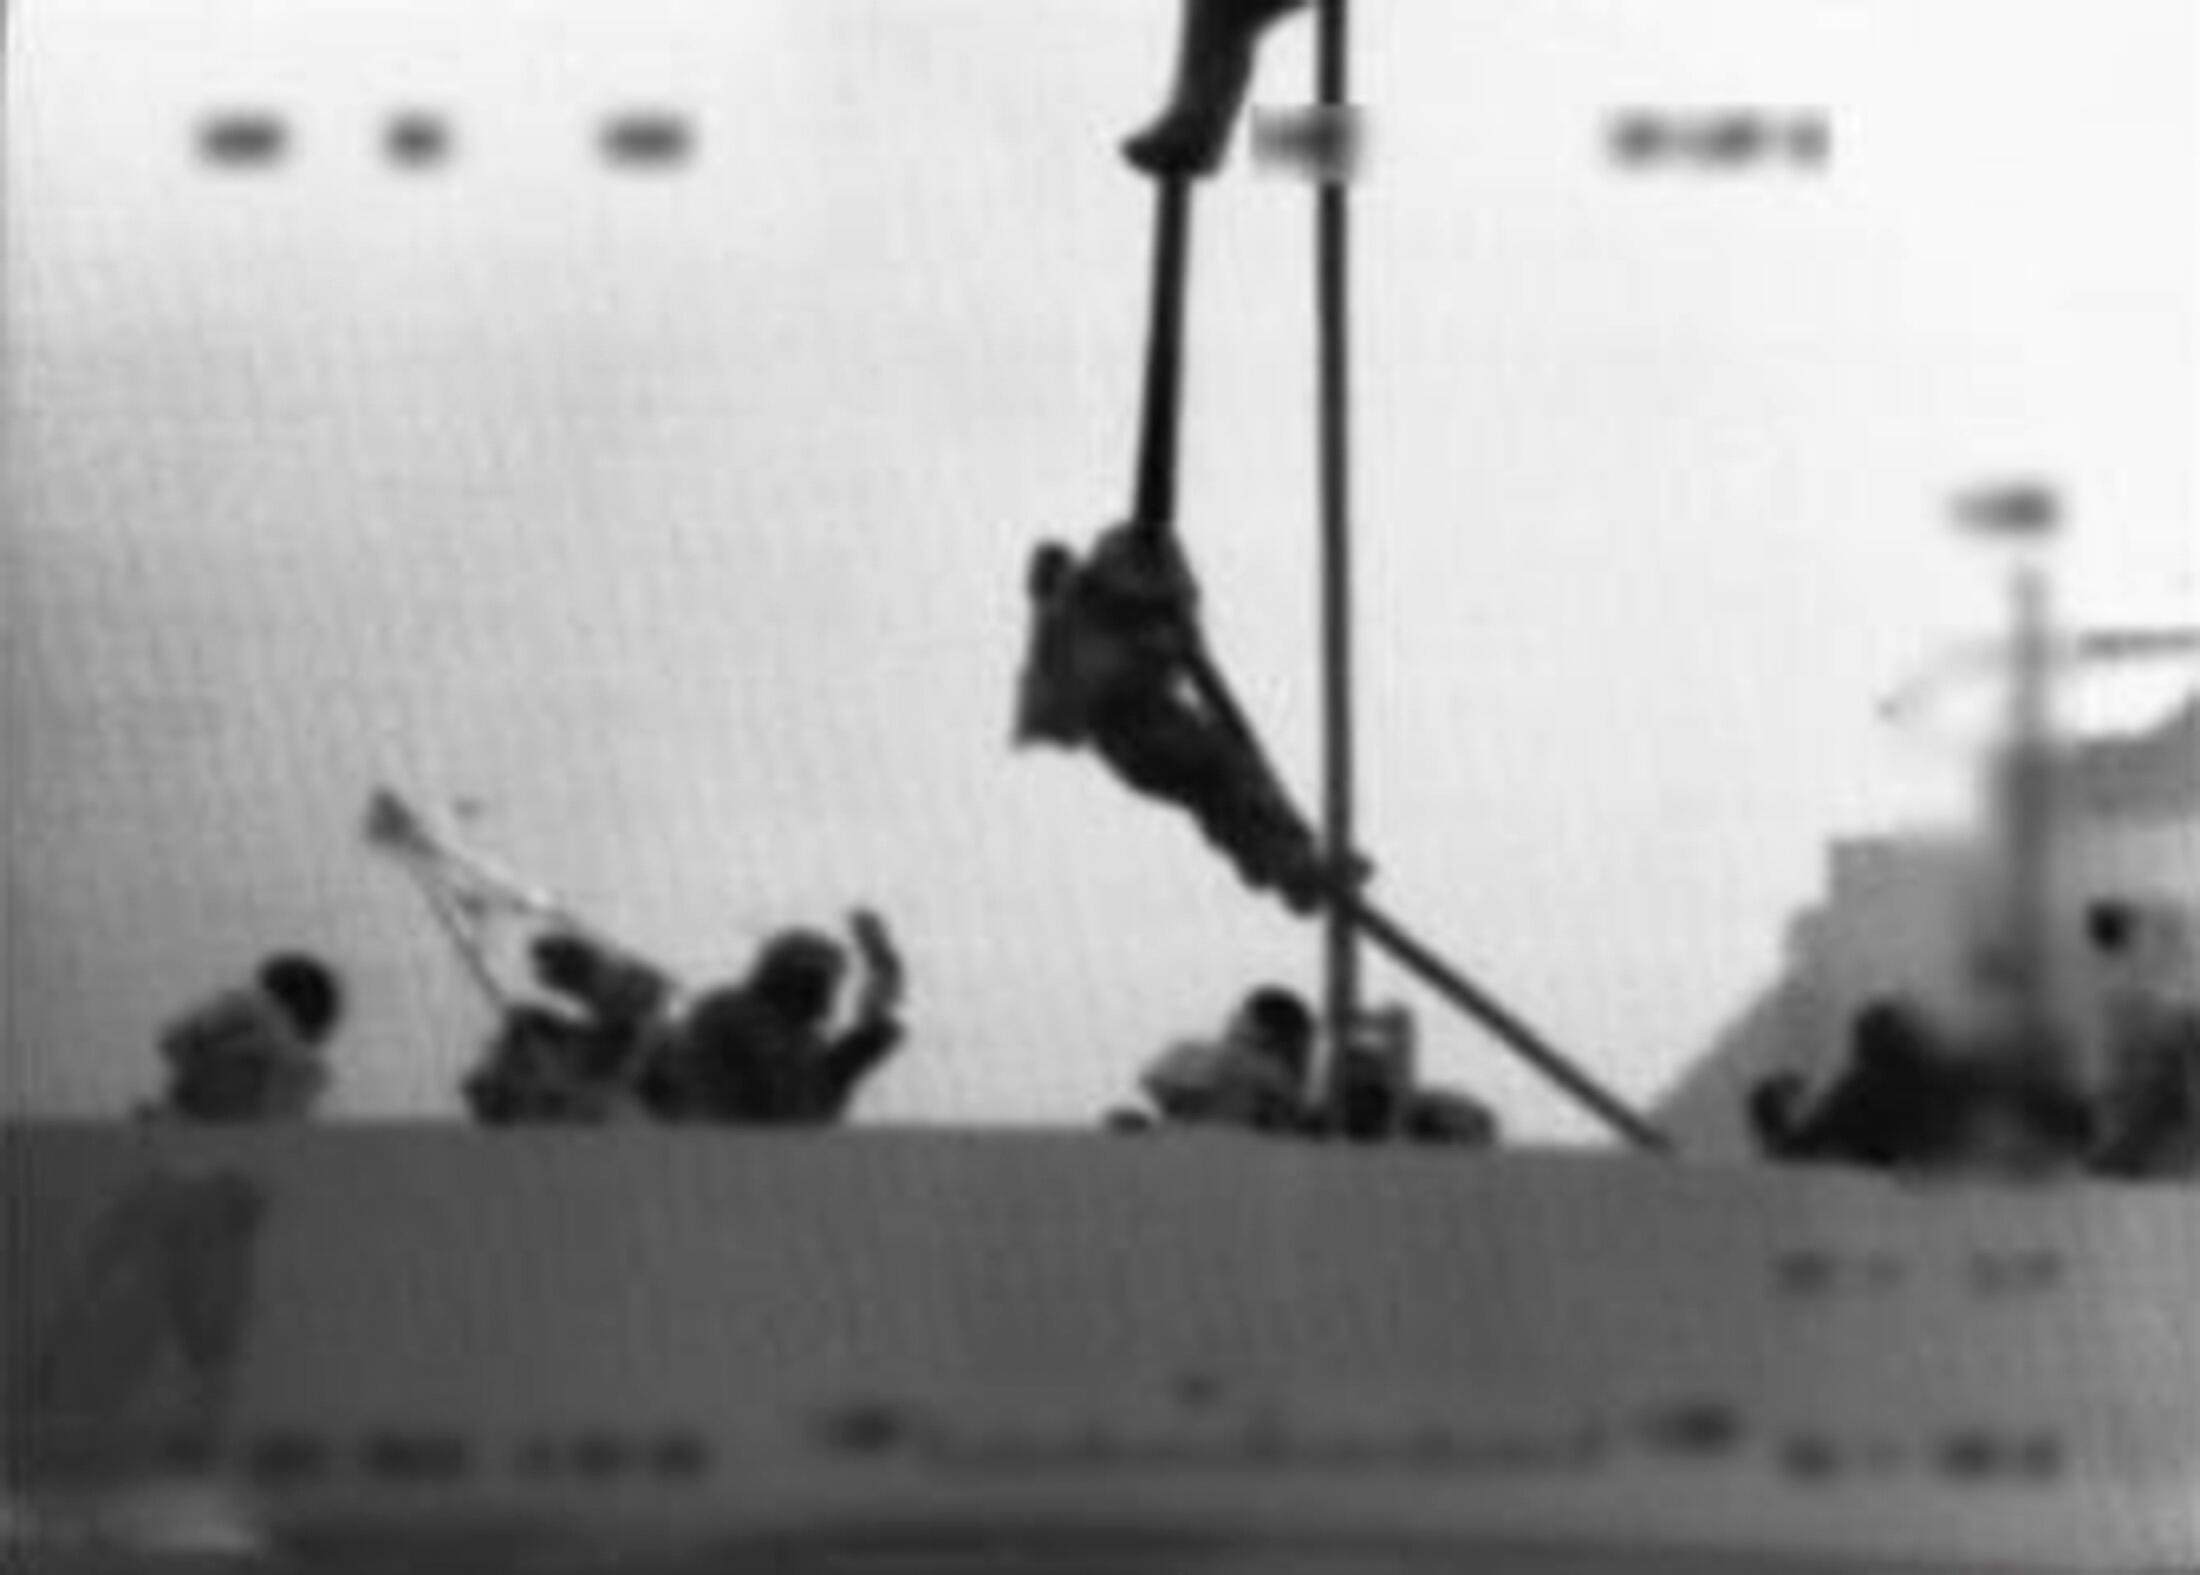 A still from footage capturing the the raid on the Turkish vessel Mavi Marmara in May 2010